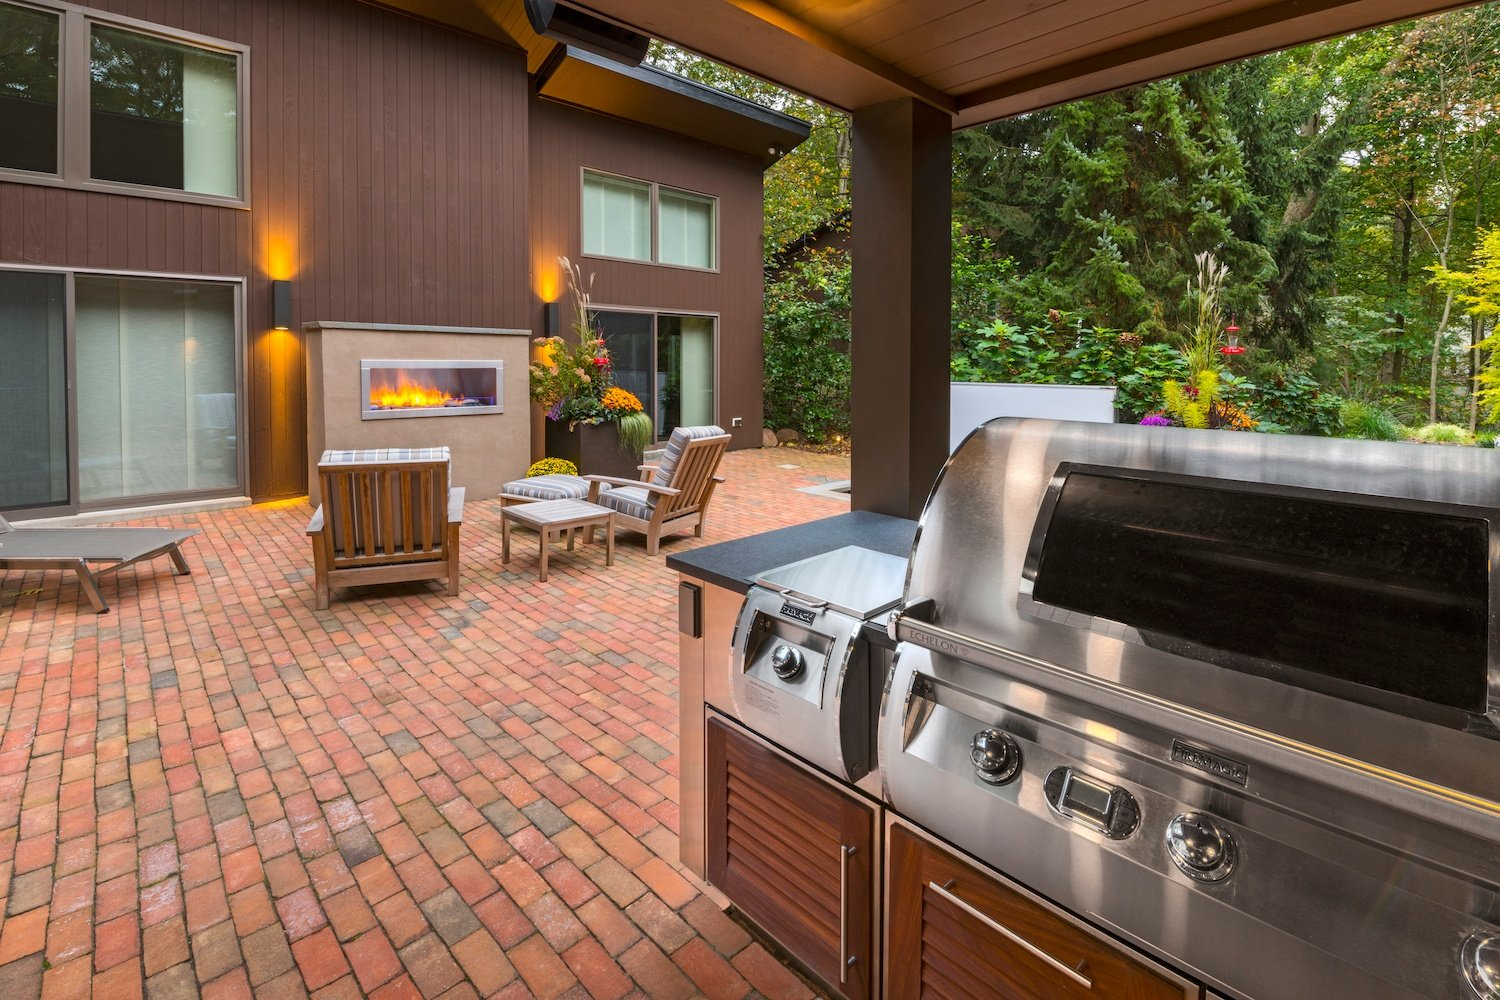 Reading, PA Landscape Design Case Study: From Fixing Patio Problems to Perfecting Outdoor Living